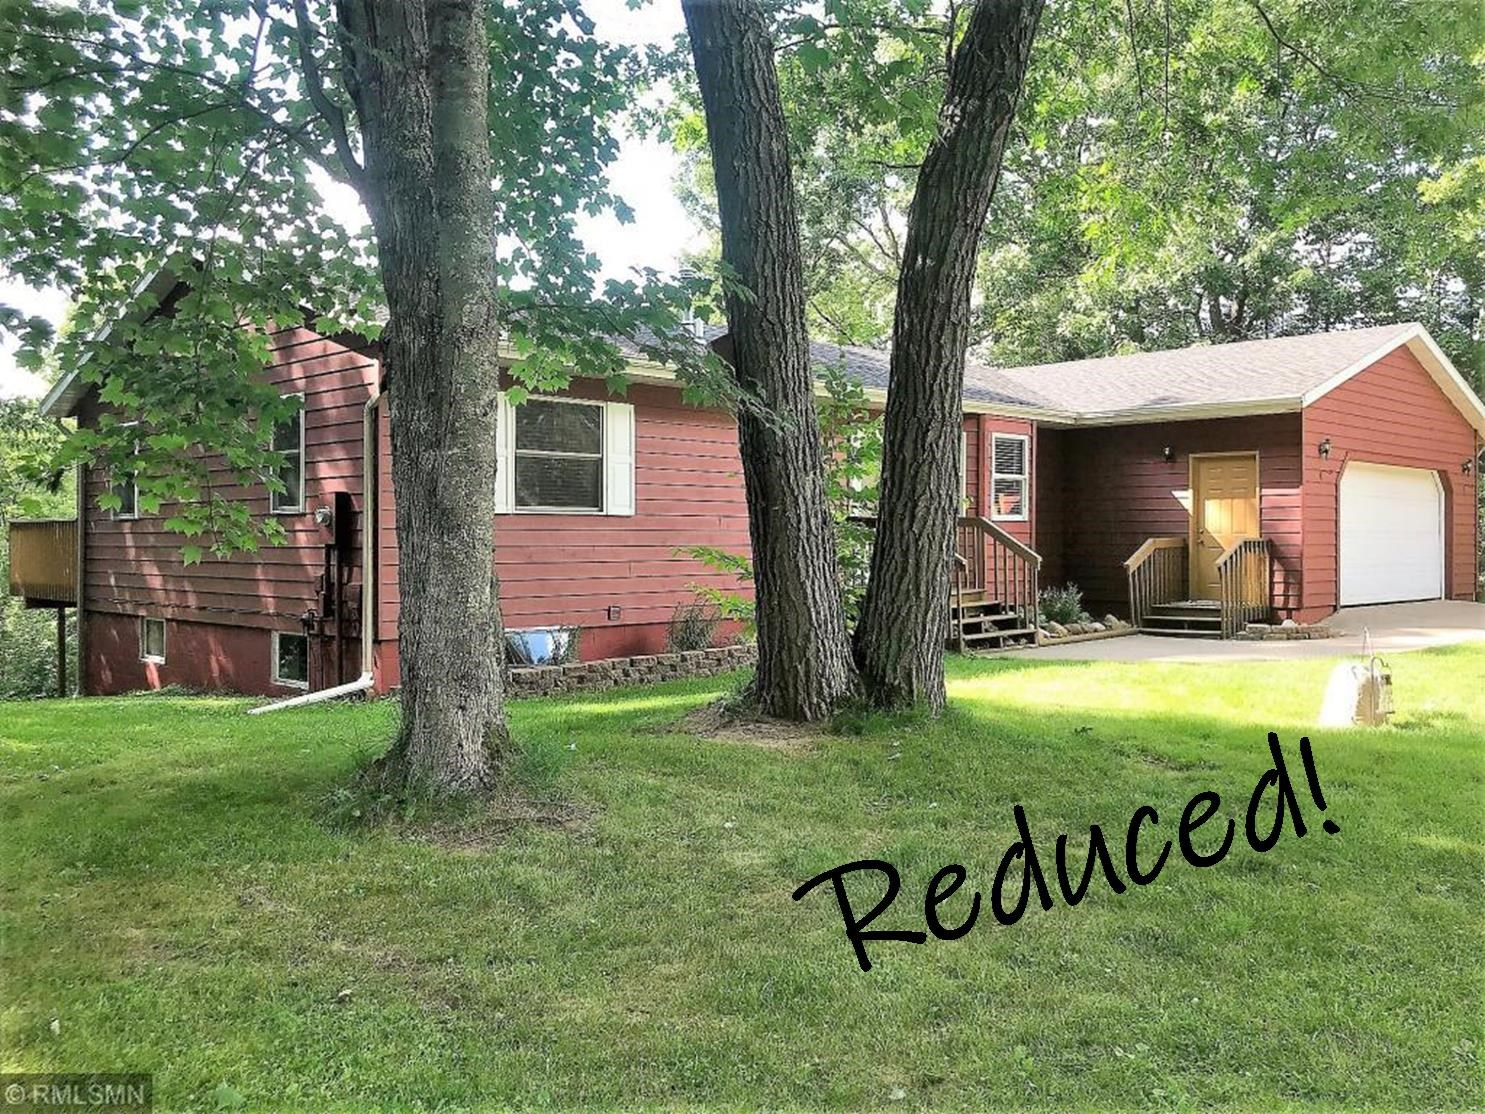 Country Home For Sale with Acreage and River Frontage, MN